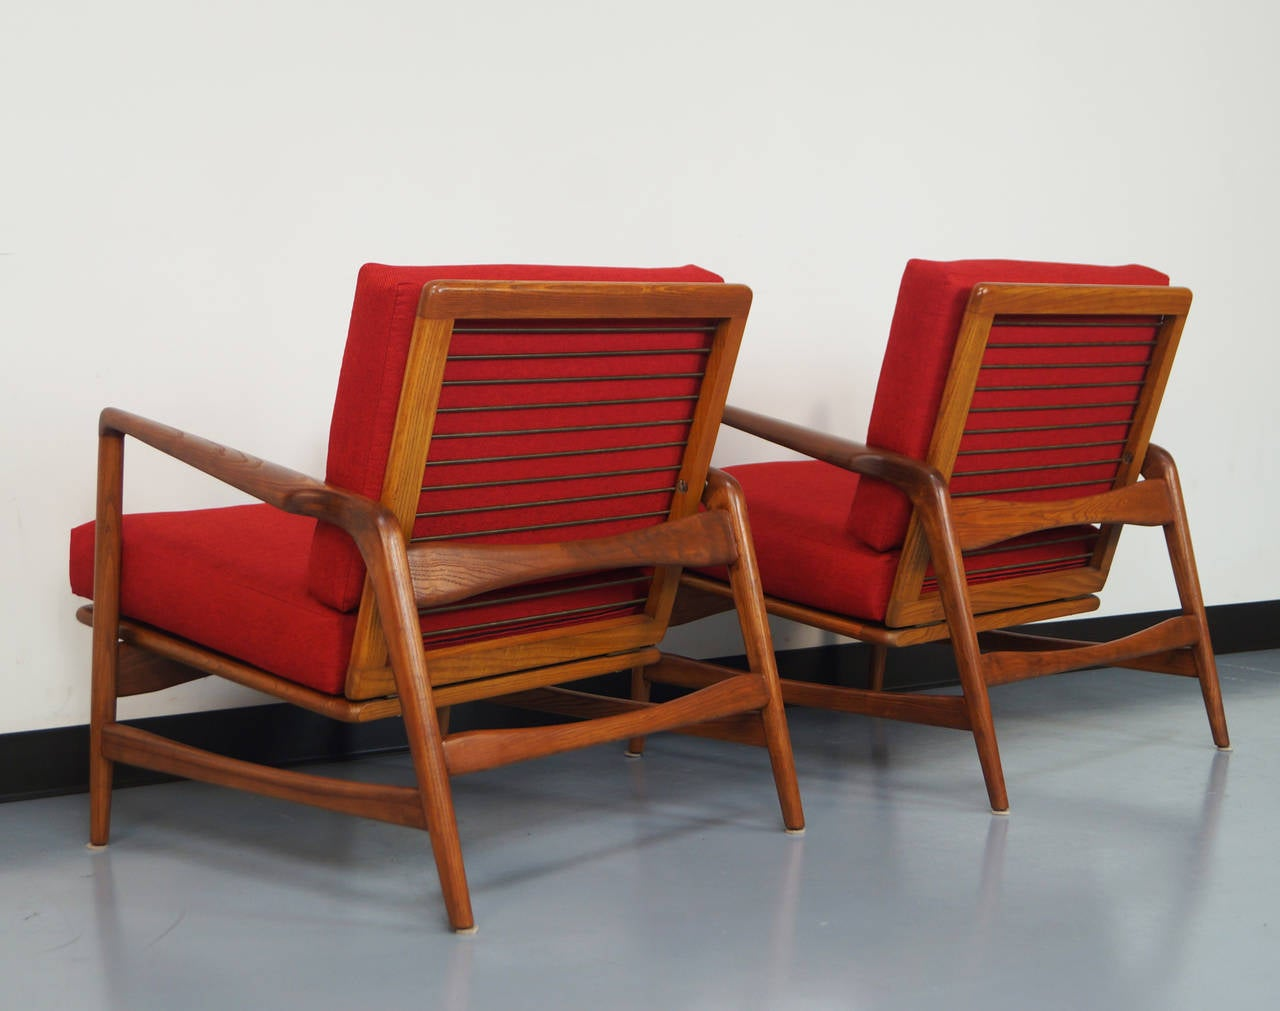 This sculptural pair of lounge chairs by ib kofod larsen is no longer - Vintage Reclining Lounge Chairs By Ib Kofod Larsen 3